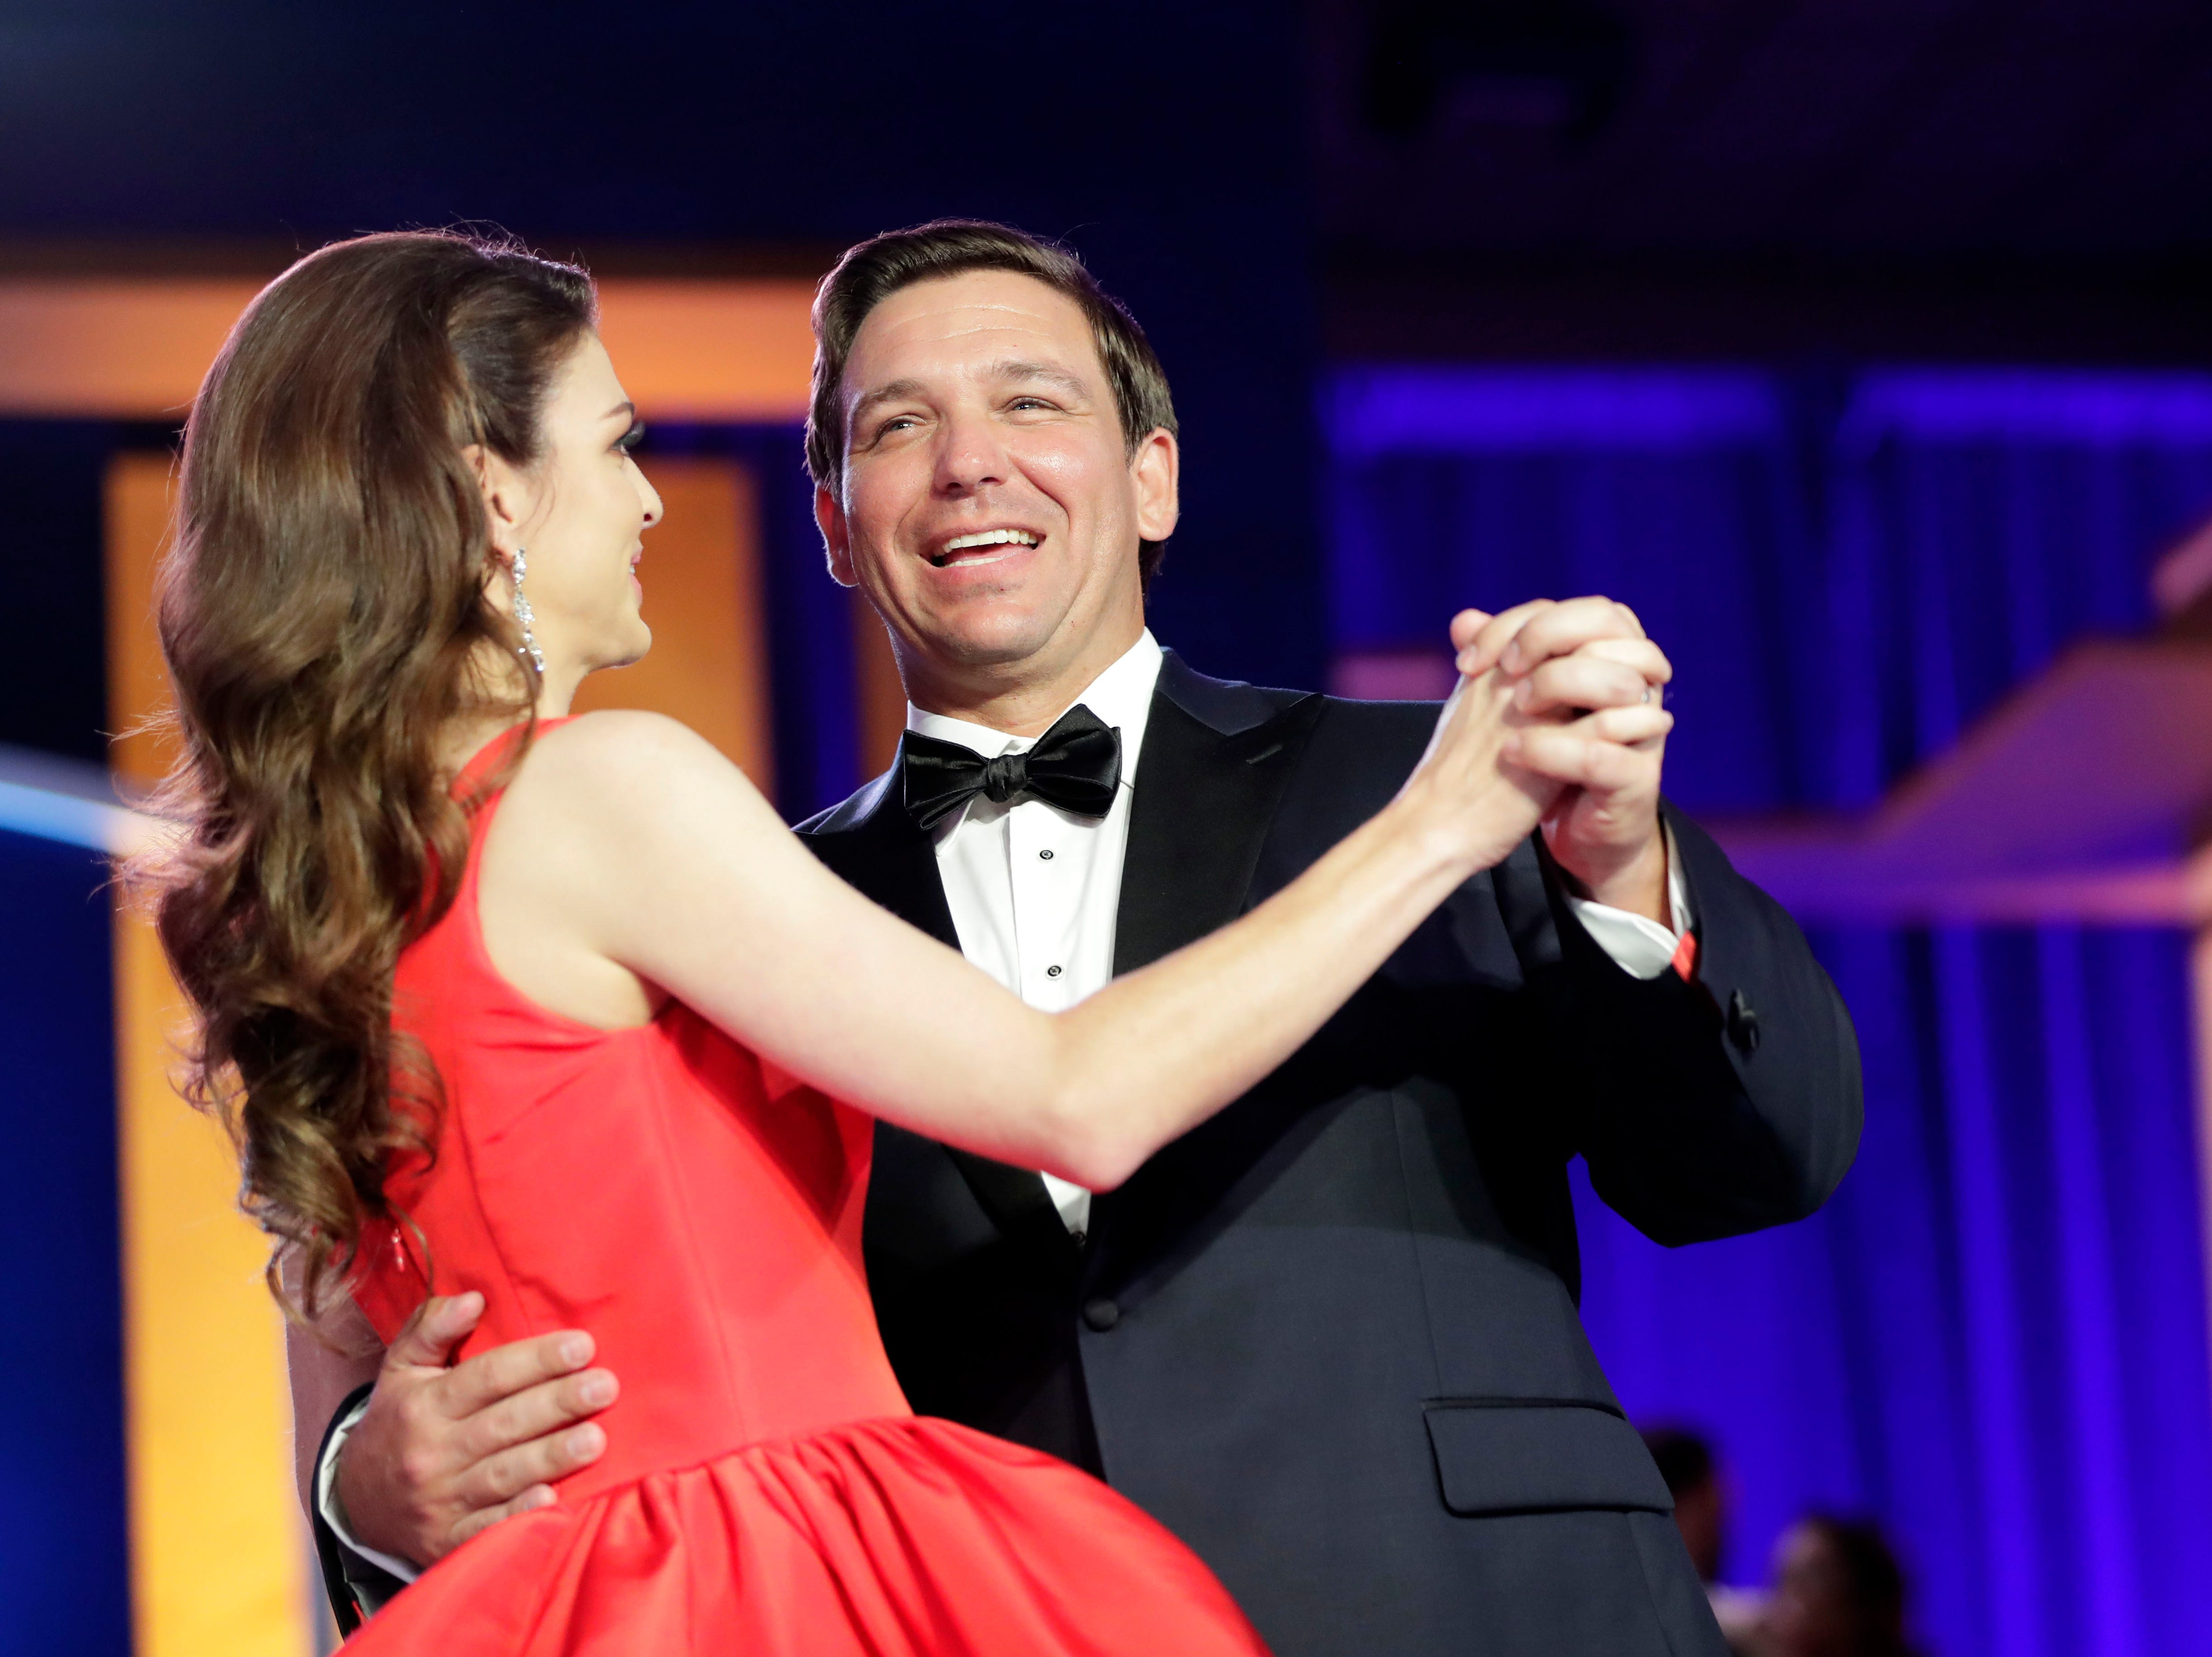 Hundreds of guests from all over Florida attend Florida's 46th Governor's Inaugural Ball at the Tucker Civic Center, Tuesday, Jan. 8, 2019. Gov. Ron DeSantis cheerfully dances with his wife first lady Casey DeSantis.